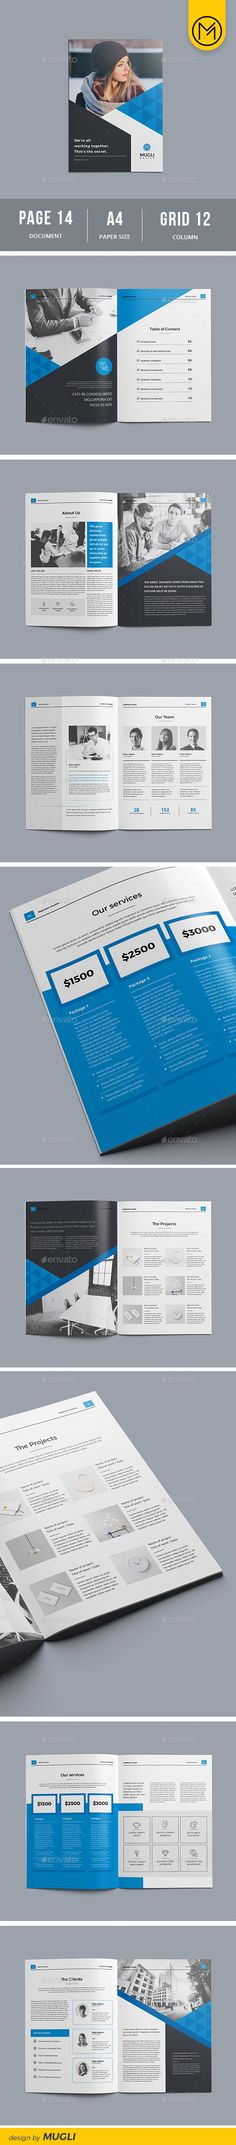 Daleman Company Profile v02 Company profile, Corporate brochure - it company profile template